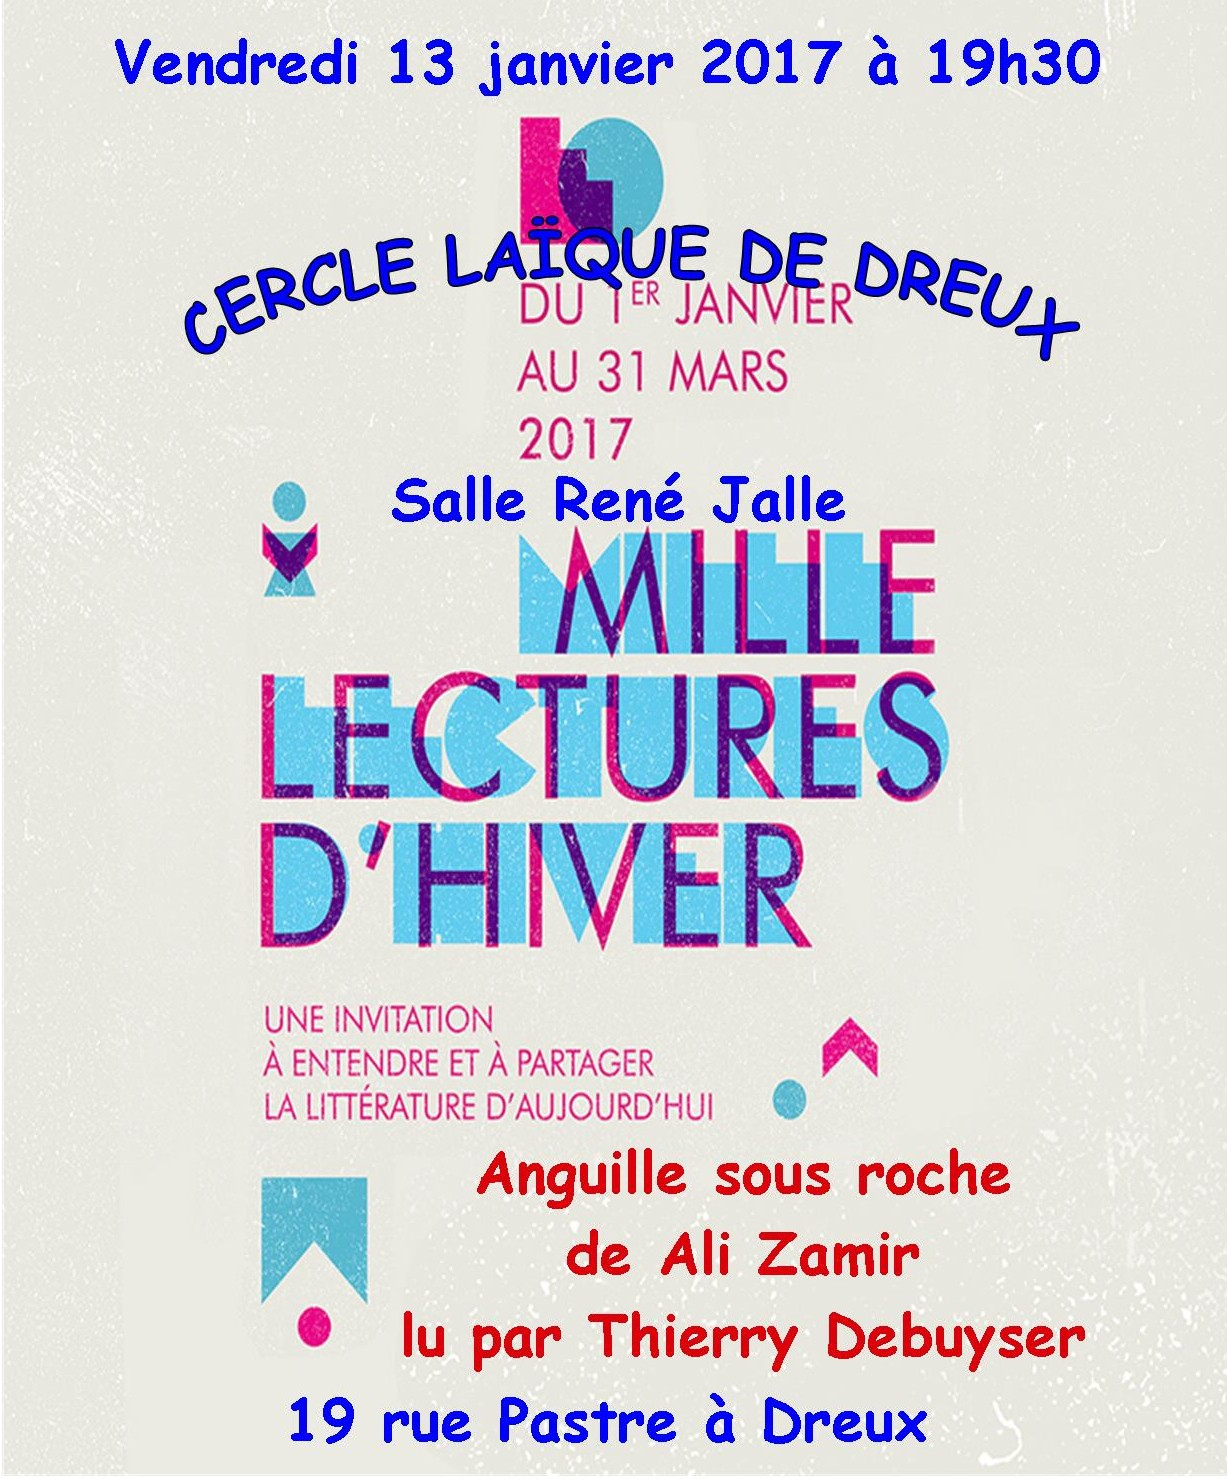 Mille lectures dhiver 2017